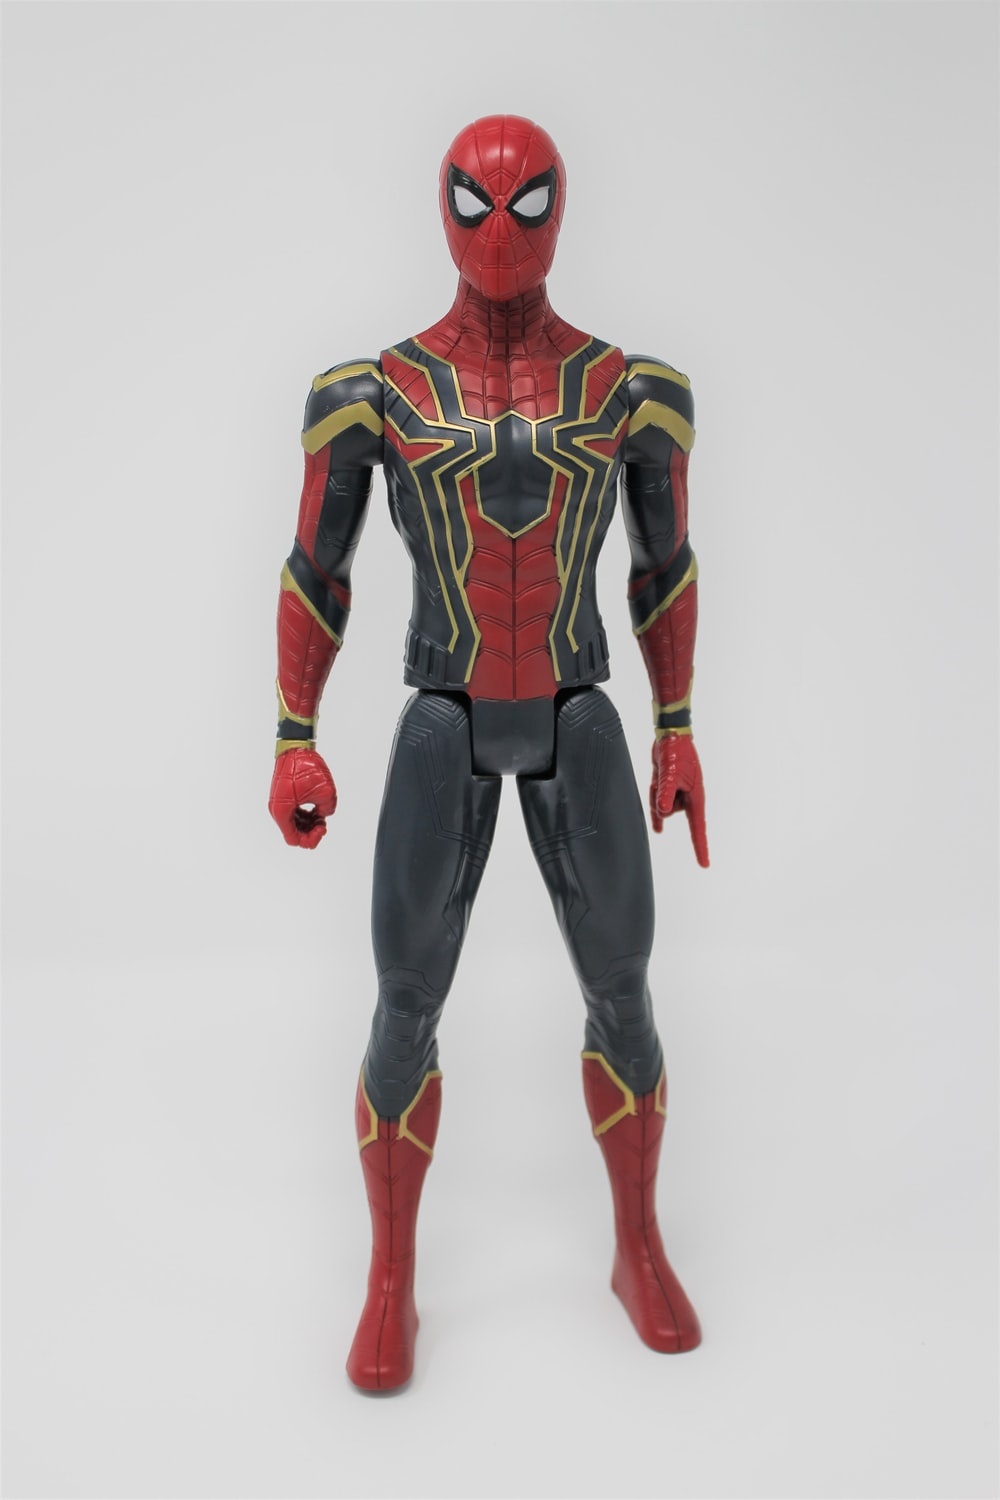 Marvel's Spider-man action figure in his Iron Spider suit